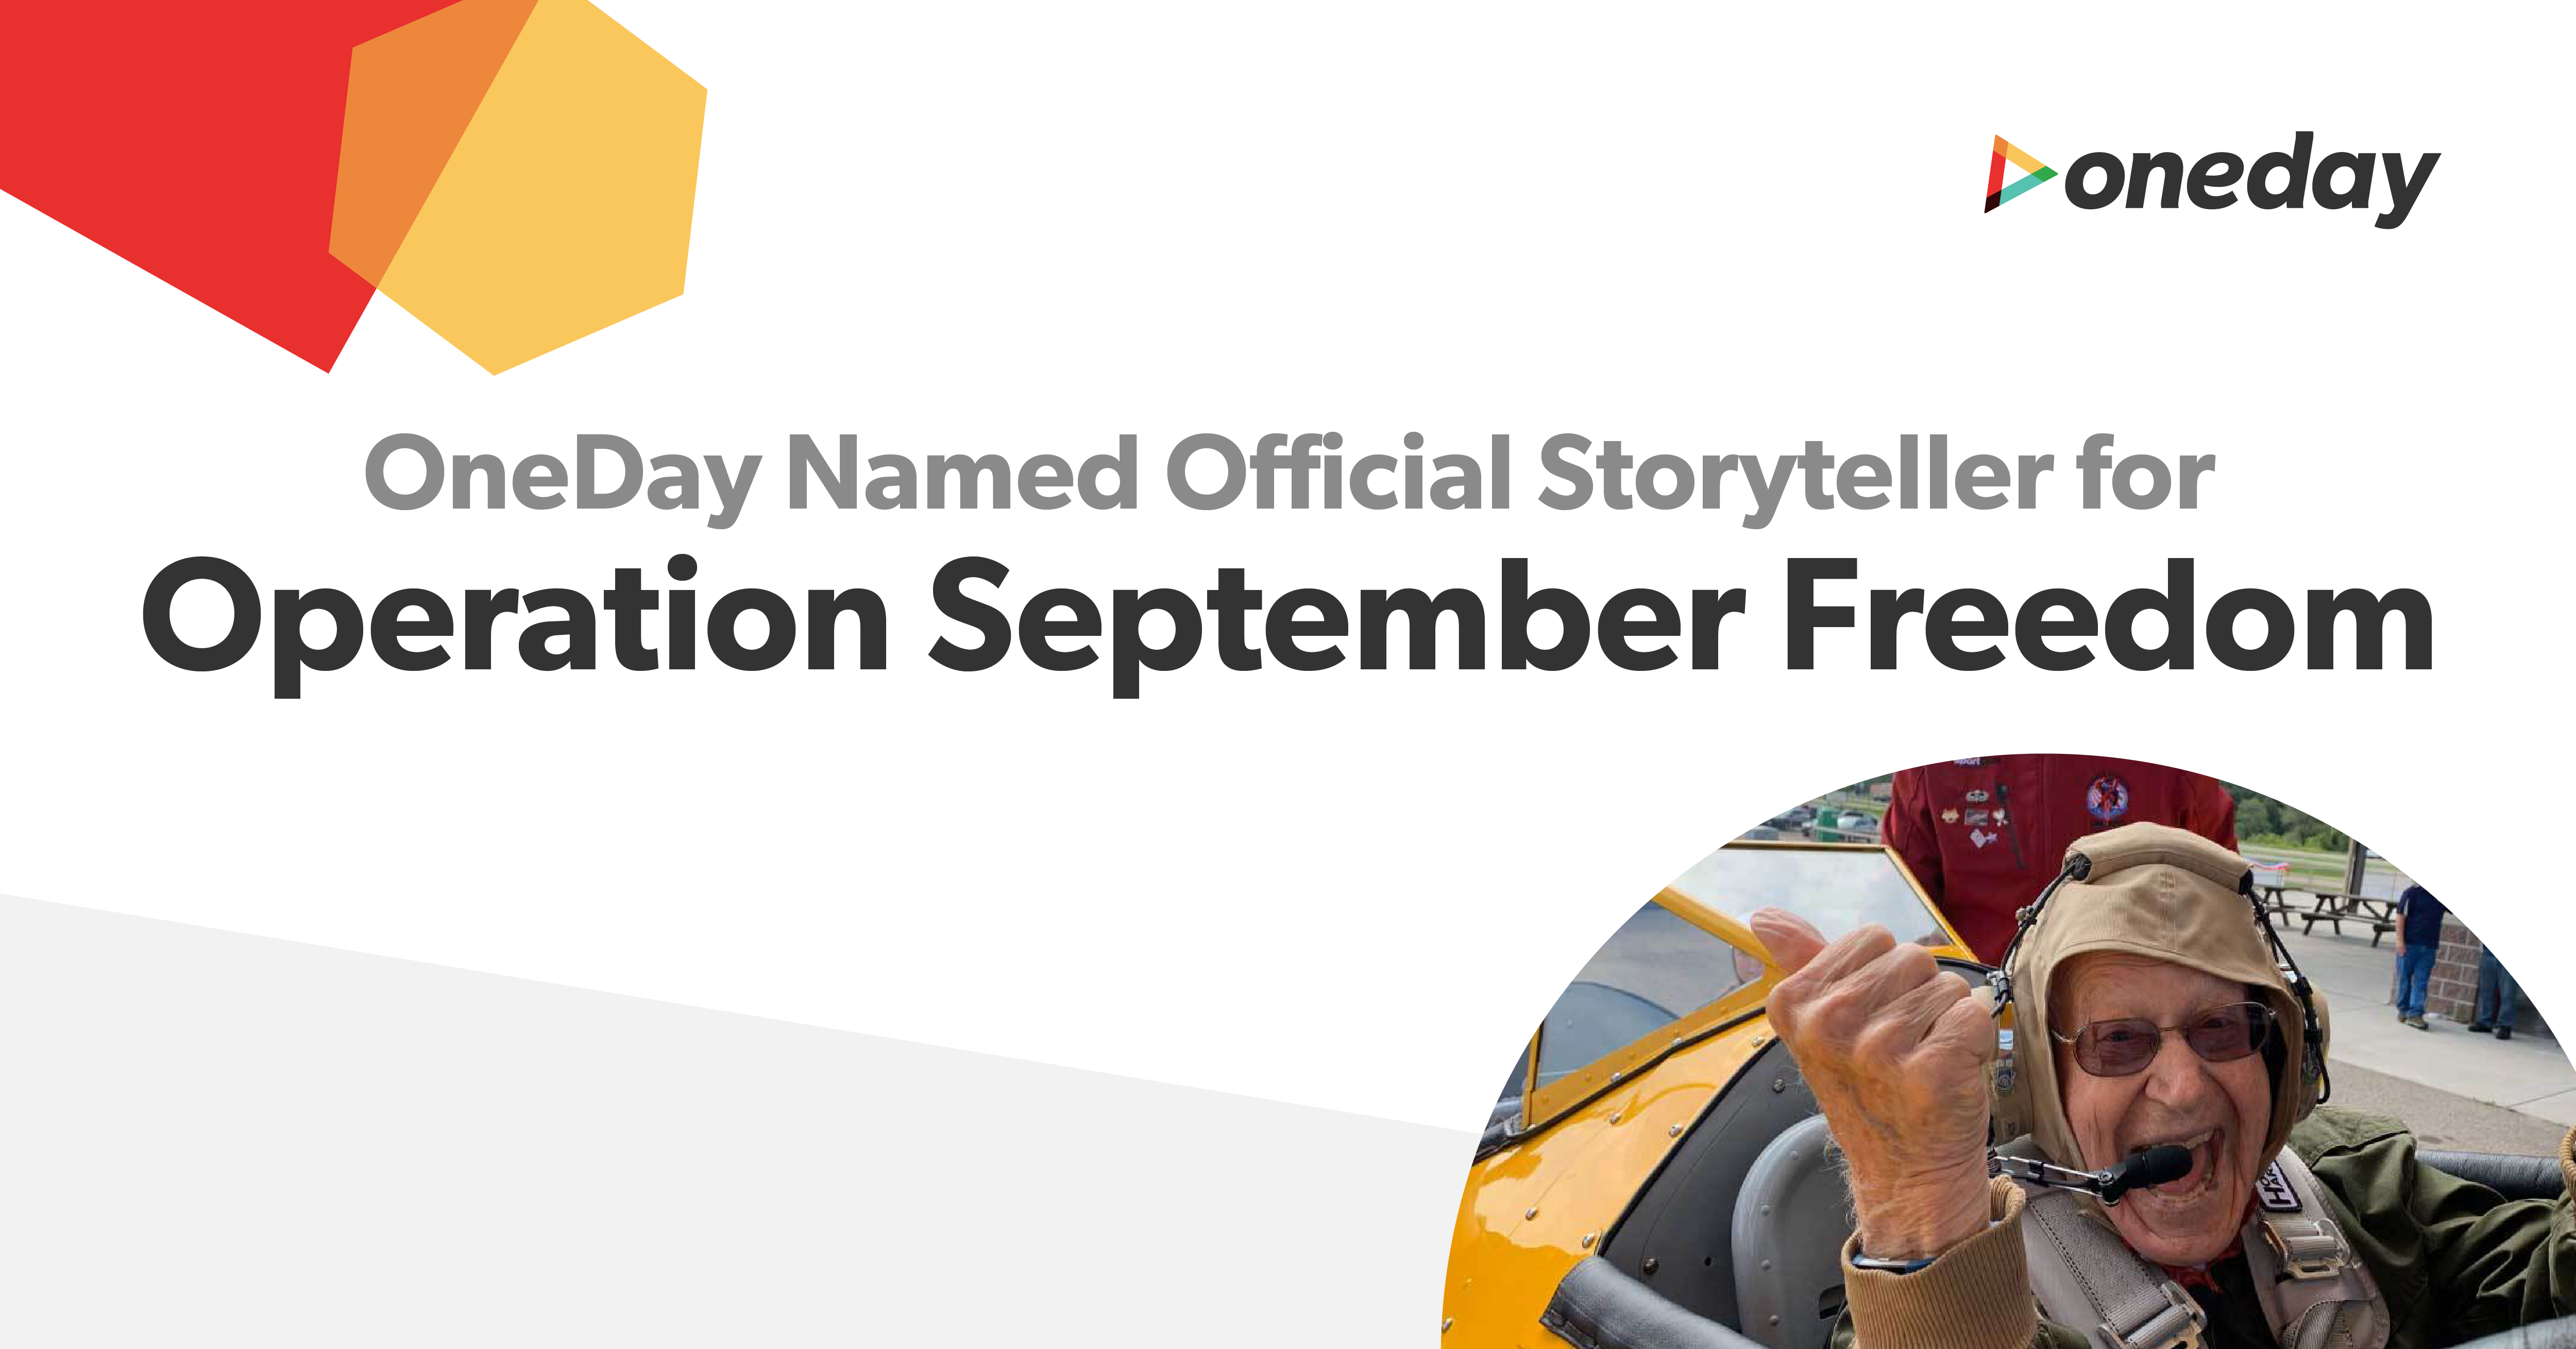 Nonprofit Dream Flights is pleased to announce a new national partner, OneDay, a Dallas-based technology company best known for video storytelling within senior living communities.